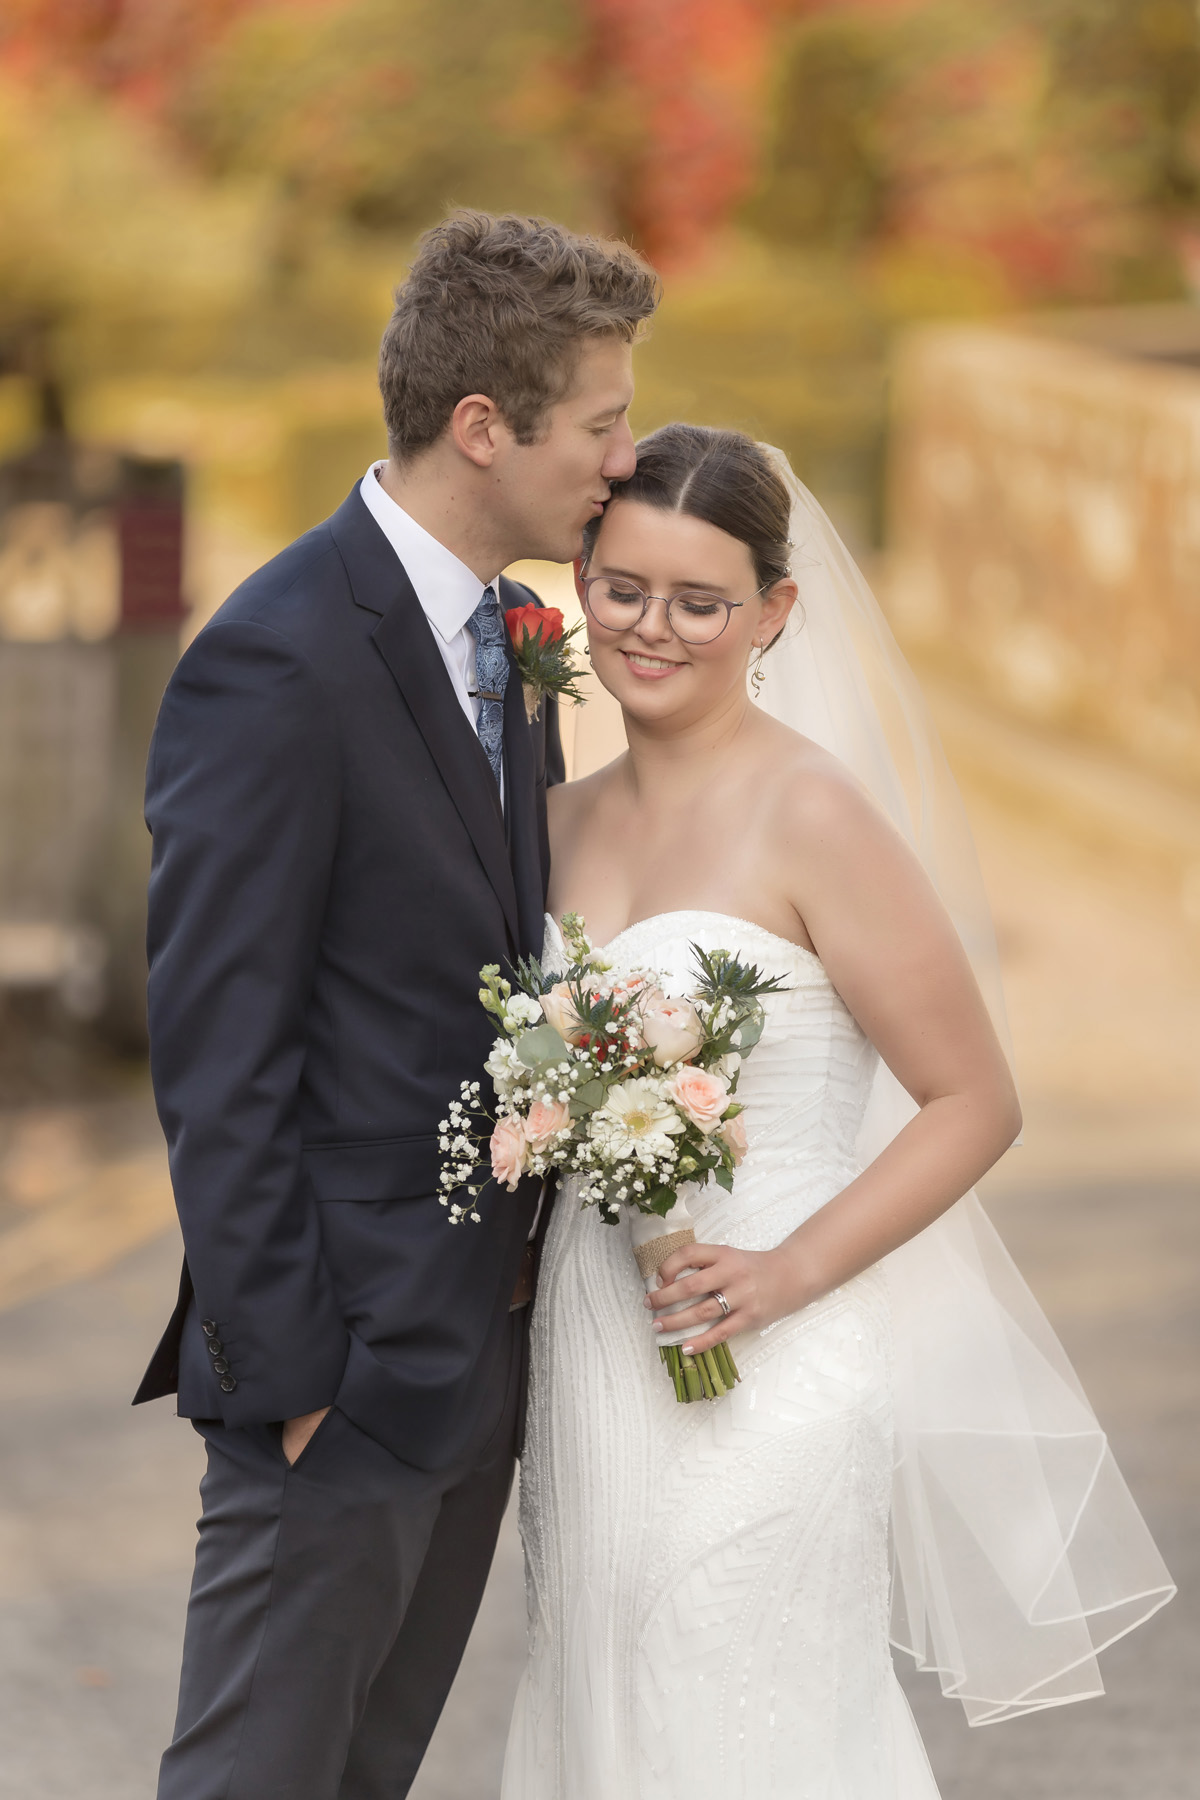 Bride and Grooms bright and colourful autumnal wedding portrait at Coombe abbey